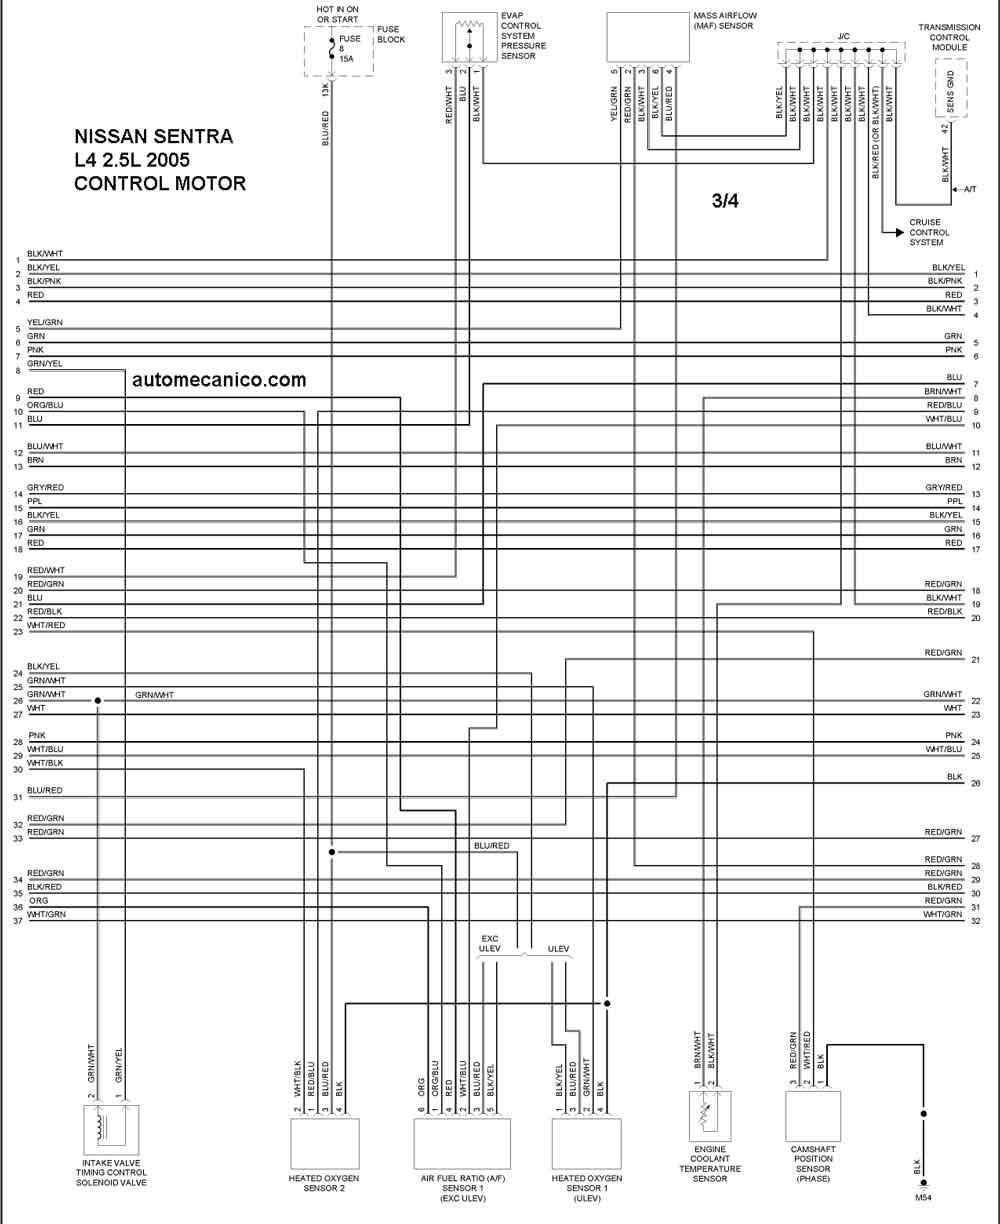 sentra0525003 2007 nissan xterra wiring diagram 2011 nissan rogue wiring diagram 2011 nissan xterra wiring diagram at creativeand.co